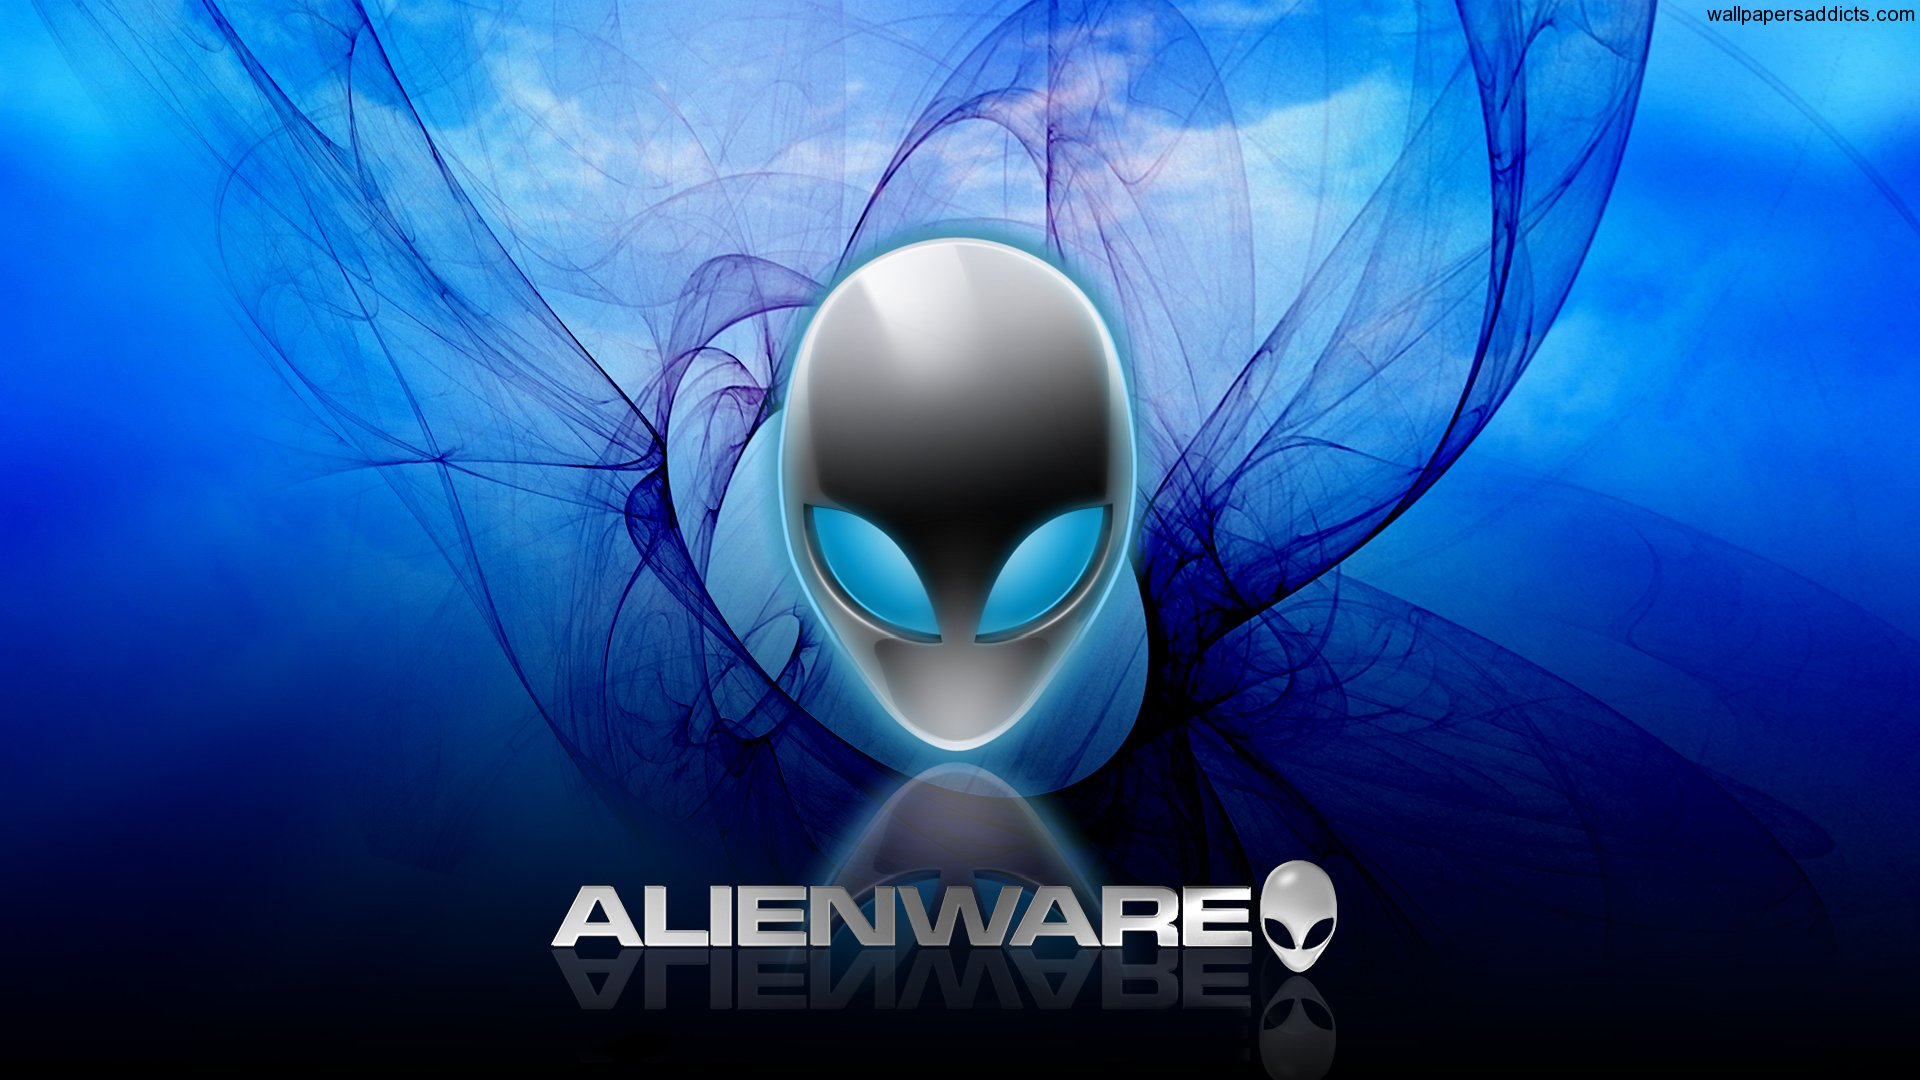 Logo alienware hd wallpaper Background HD Wallpaper for Desktop 1920x1080